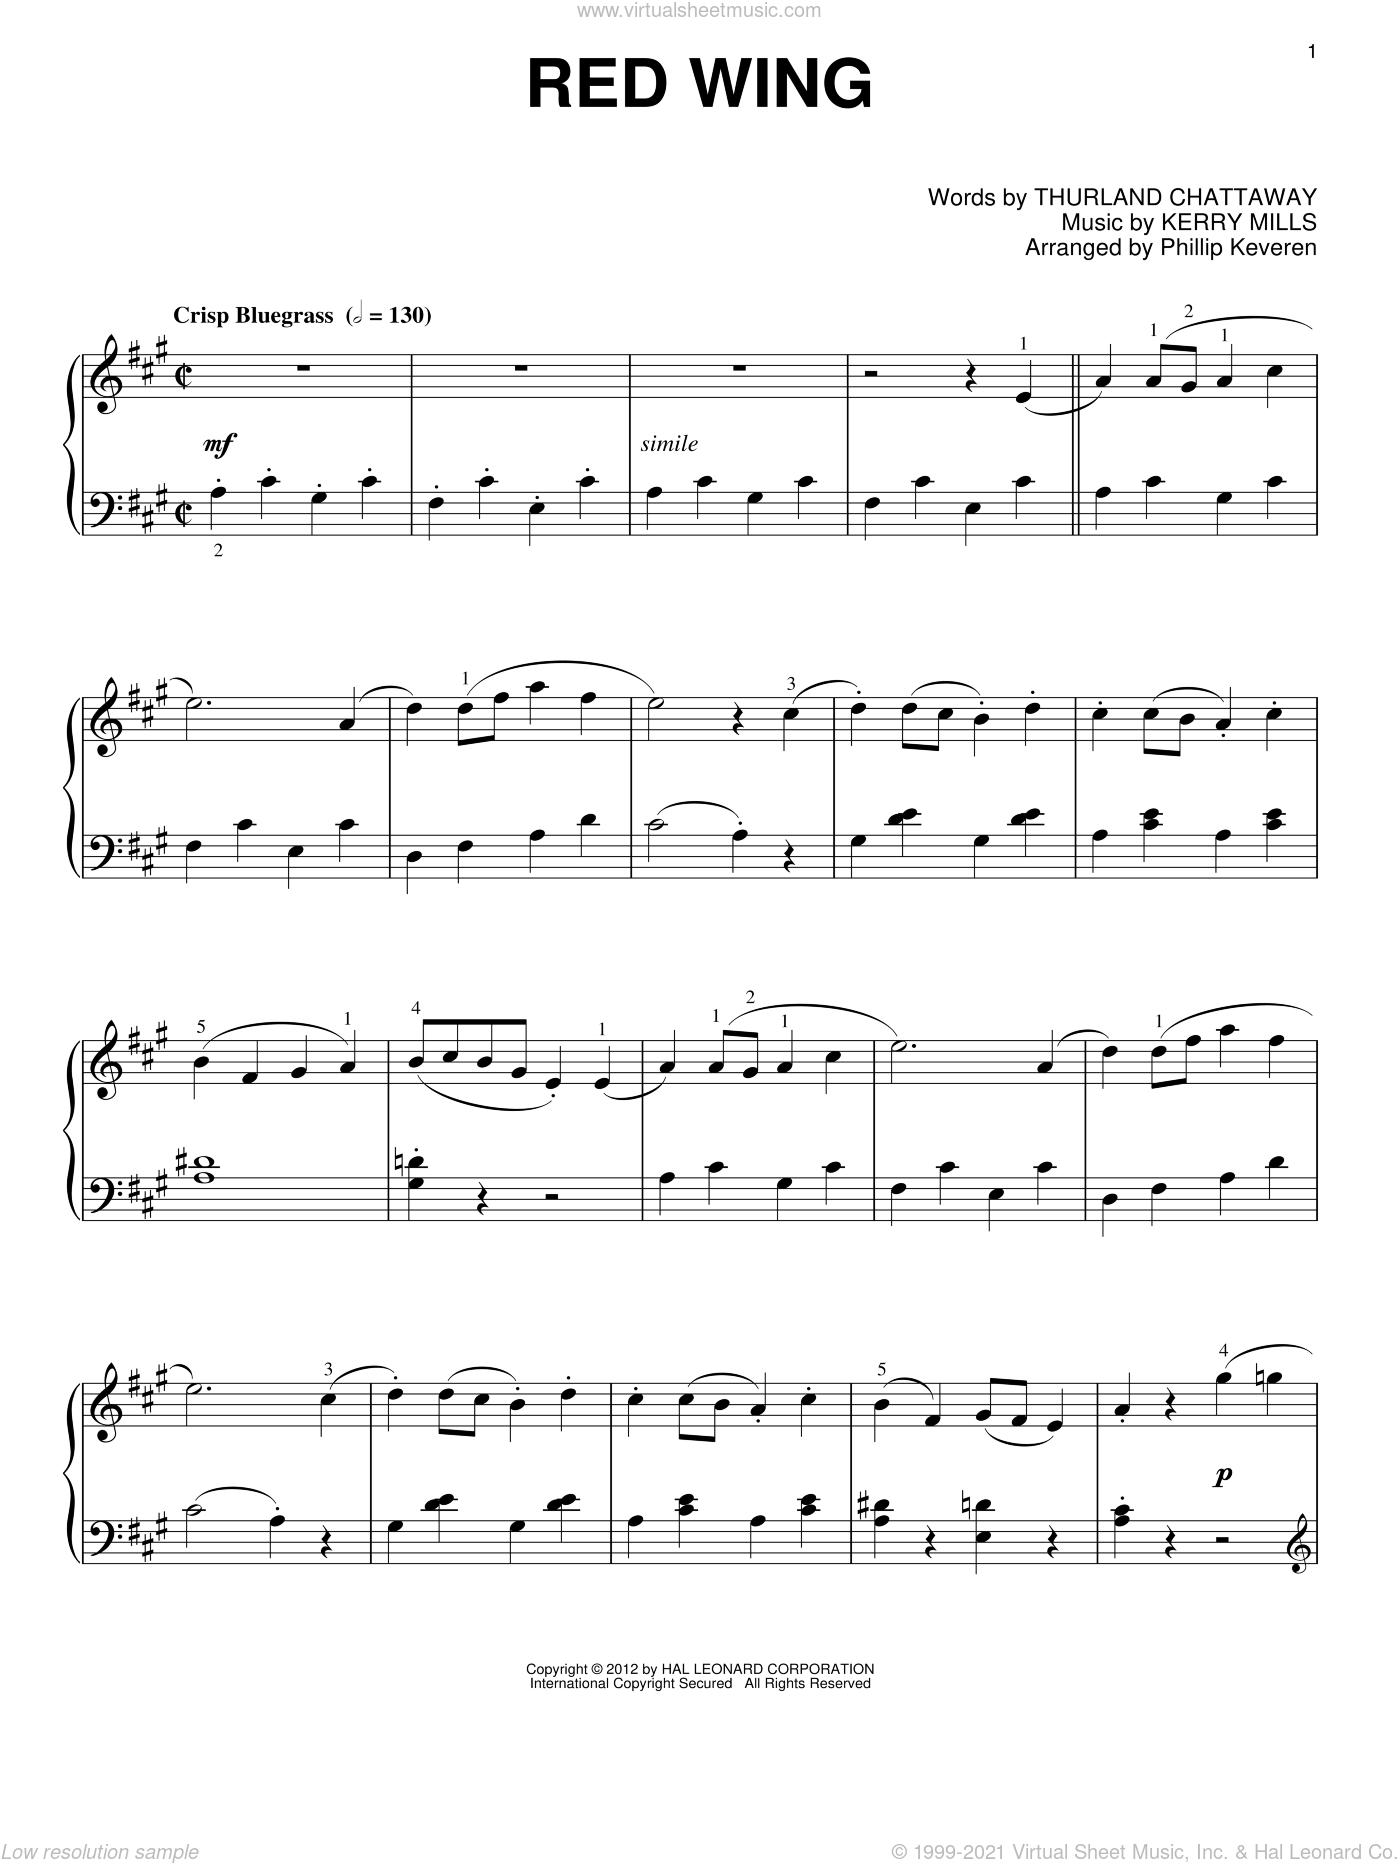 Red Wing sheet music for piano solo by Thurland Chattaway